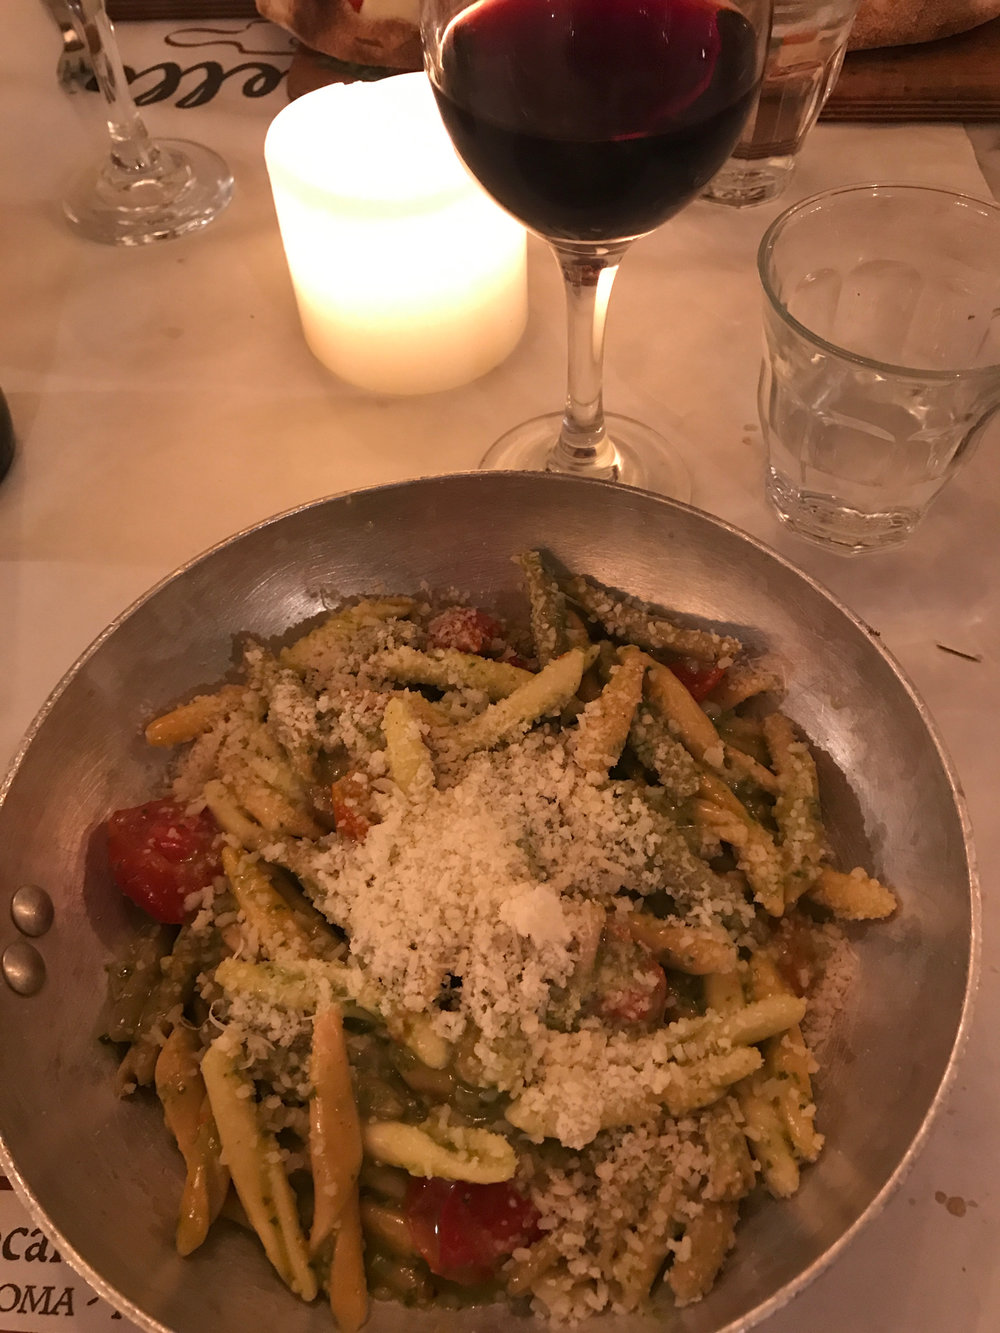 this was one of MANY plates of pesto I had during our trip. couldn't get enough!